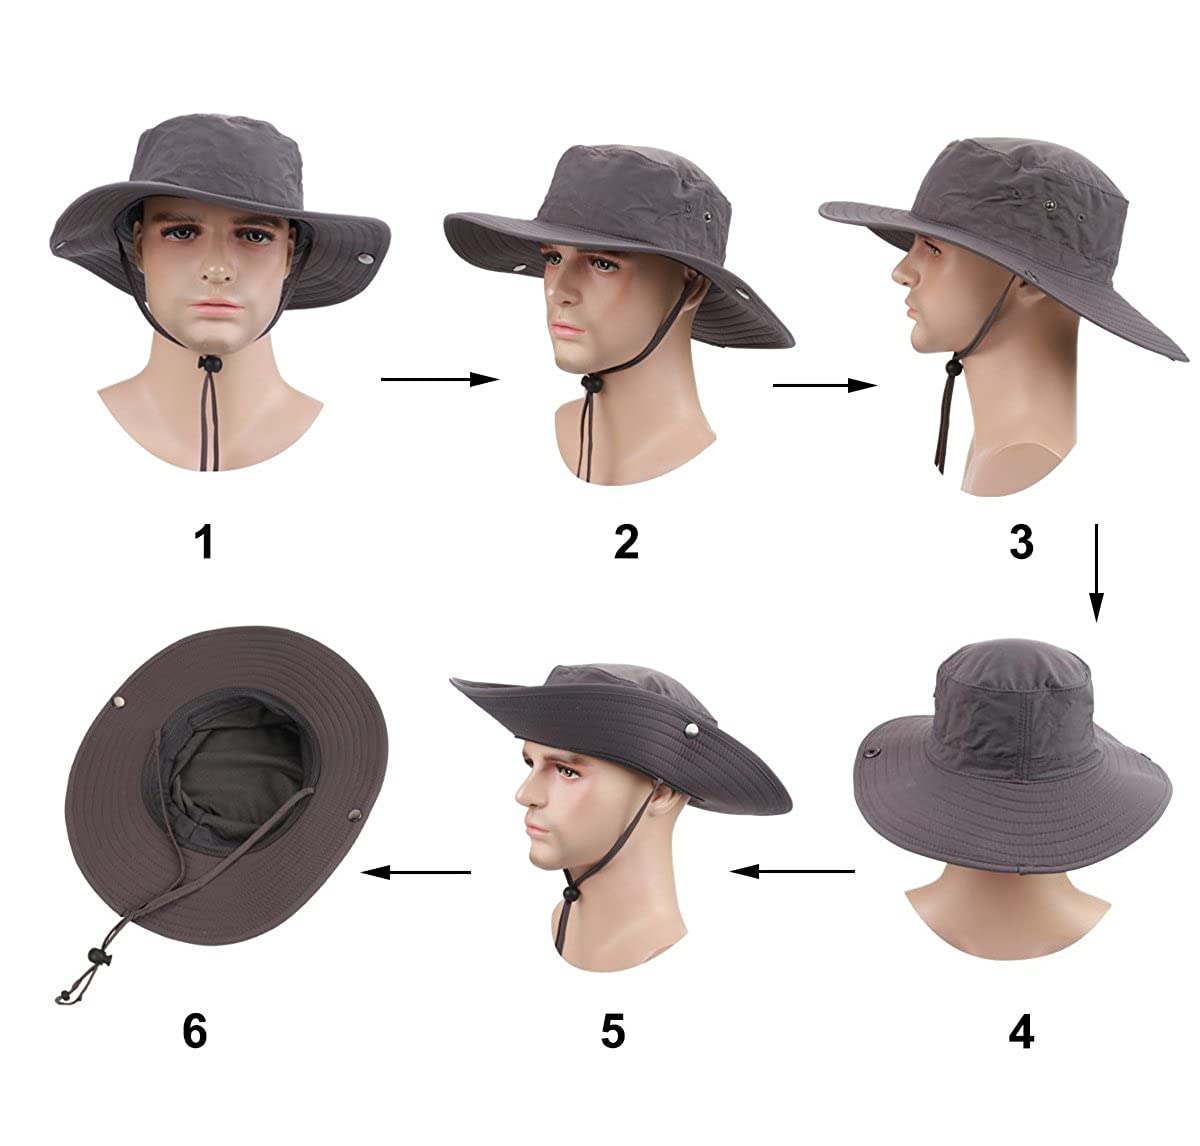 2a7d6333c586f4 ISEYMI Wide Brim Caps Sun Block Collapsible Hats Fishing/Golf Hat  Sombriolet Sun Hat UPF50+ for Men/Women at Amazon Men's Clothing store: